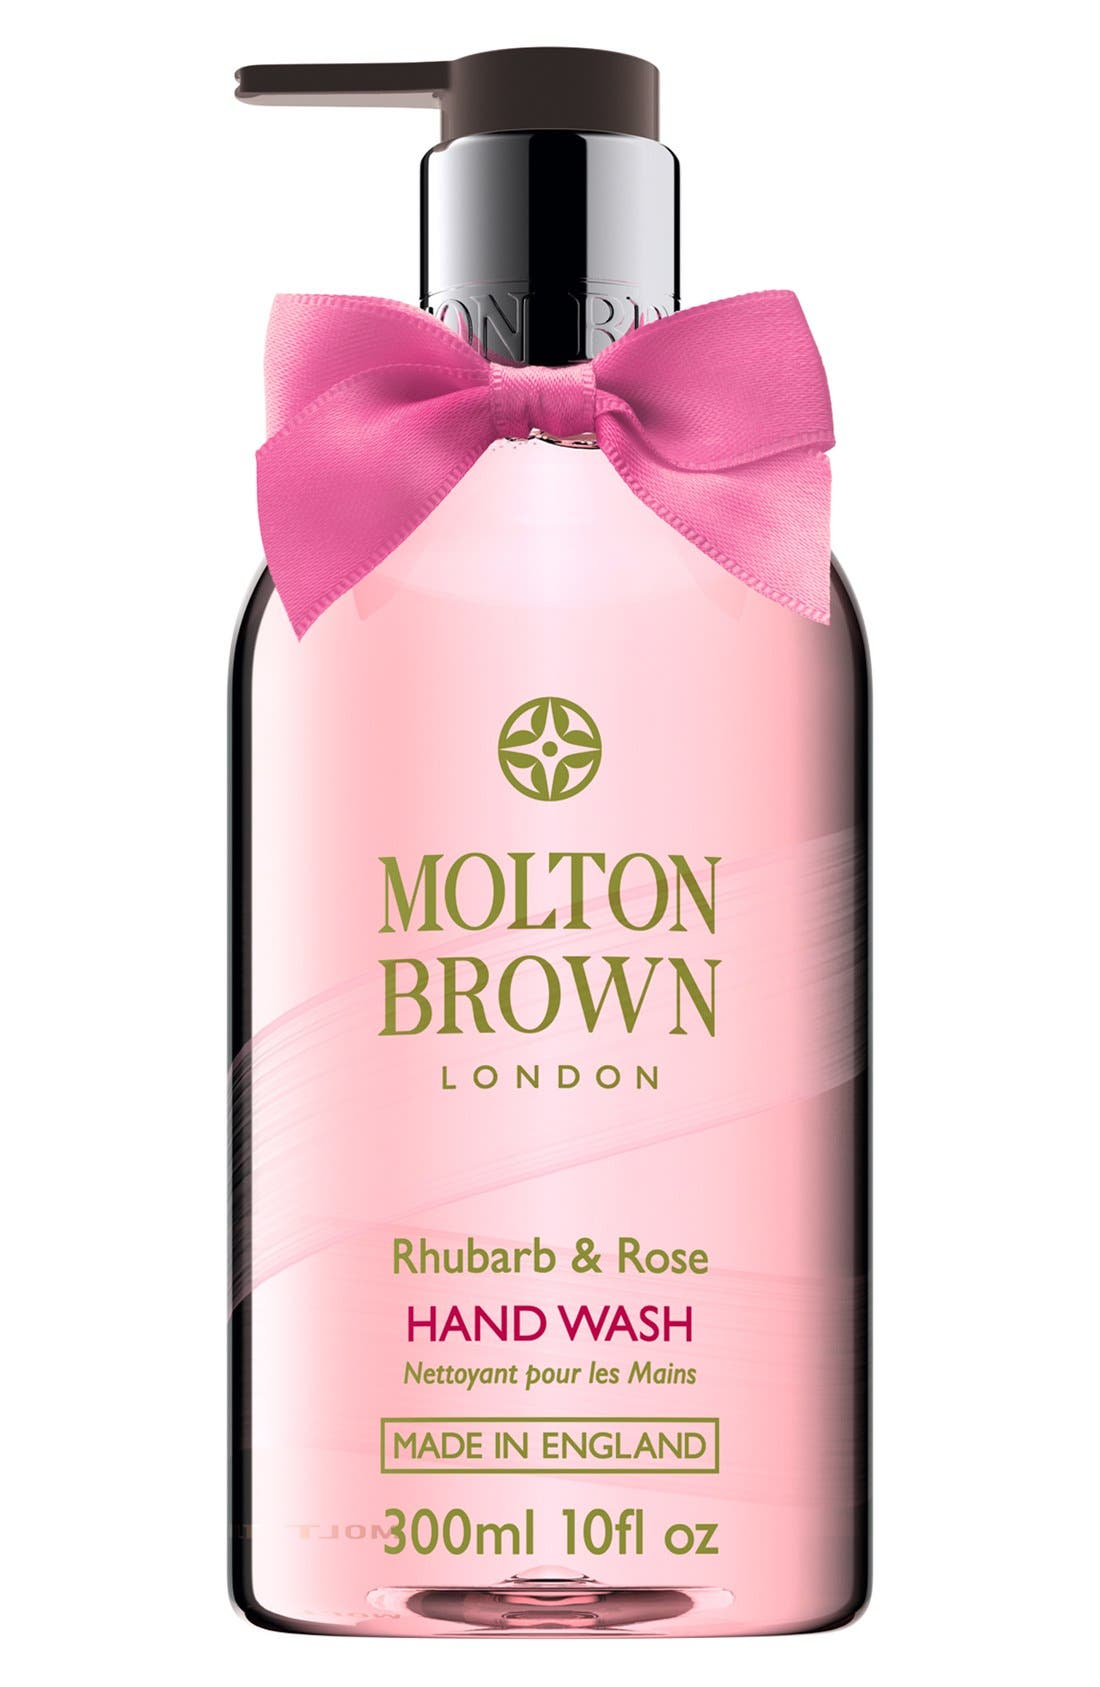 MOLTON BROWN London 'Rhubarb & Rose' Hand Wash